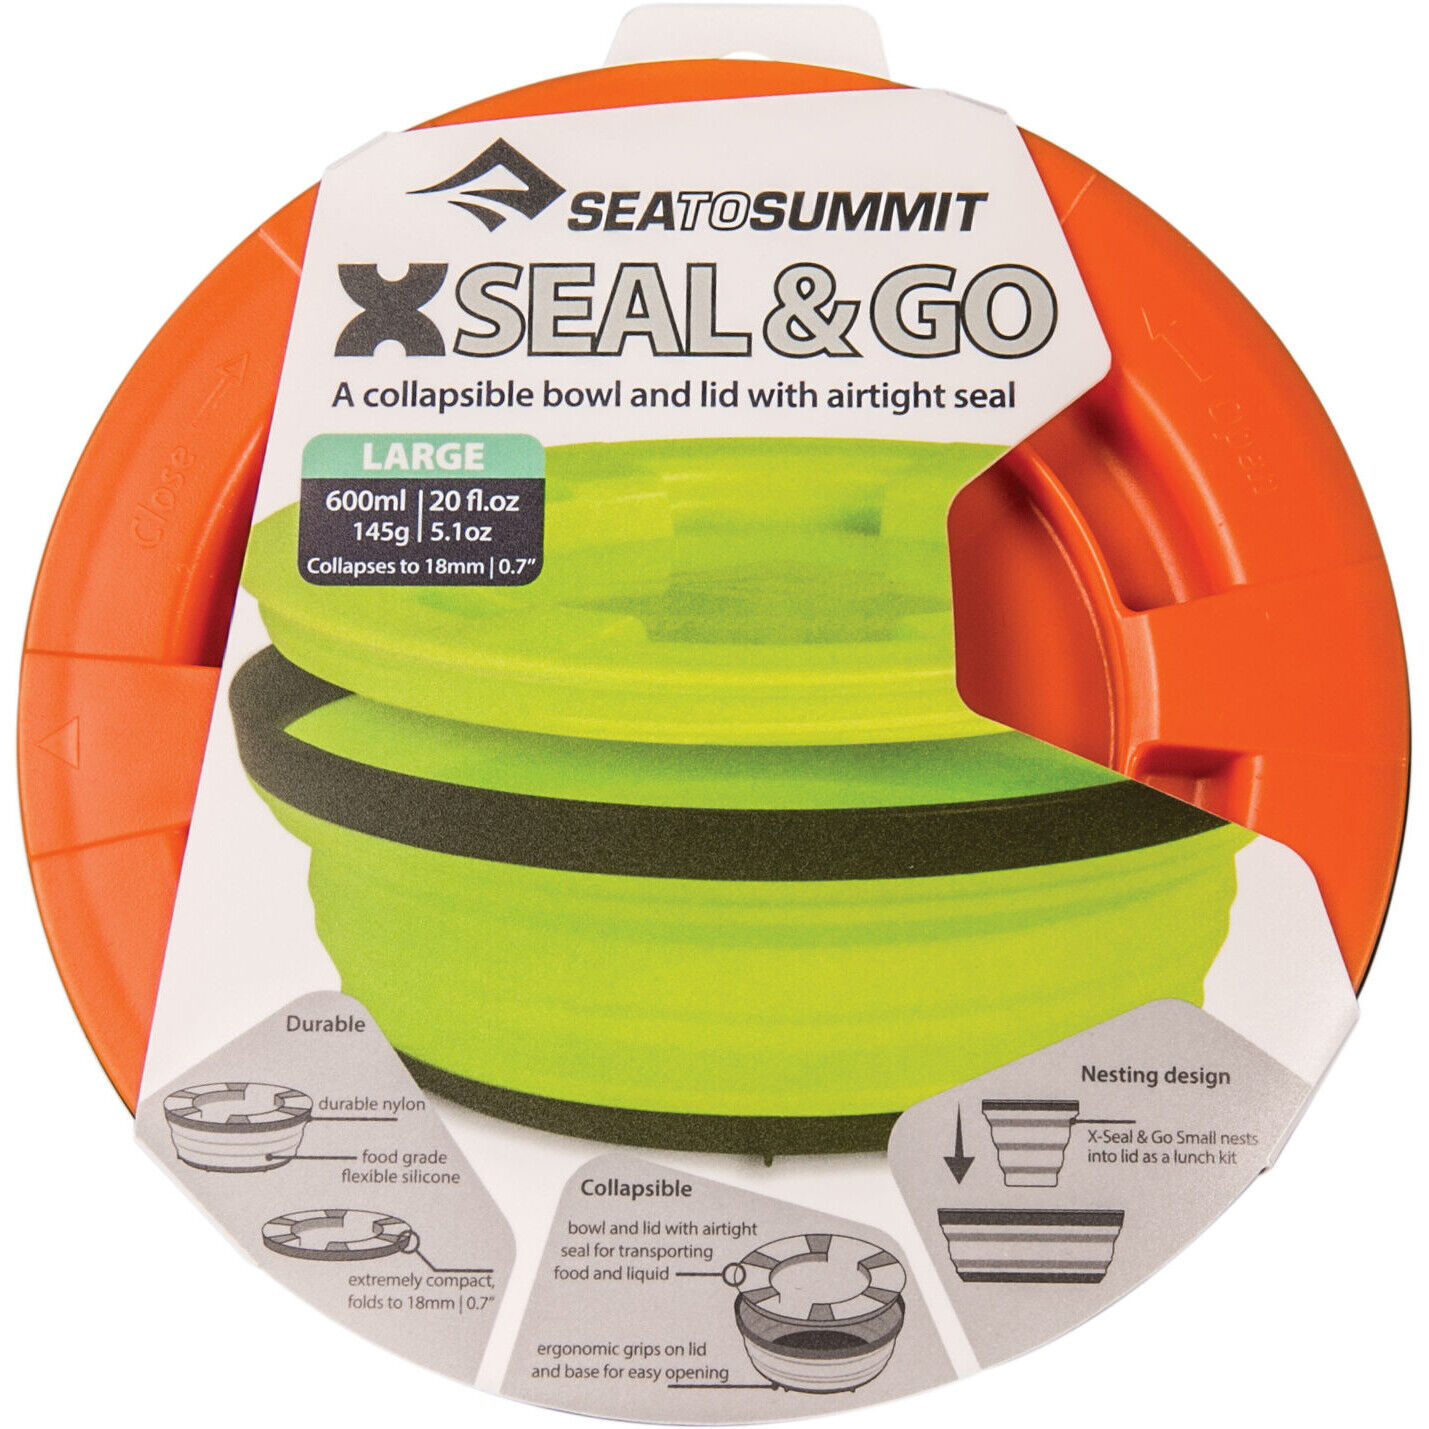 Sea to Summit X Seal & Go Large orange